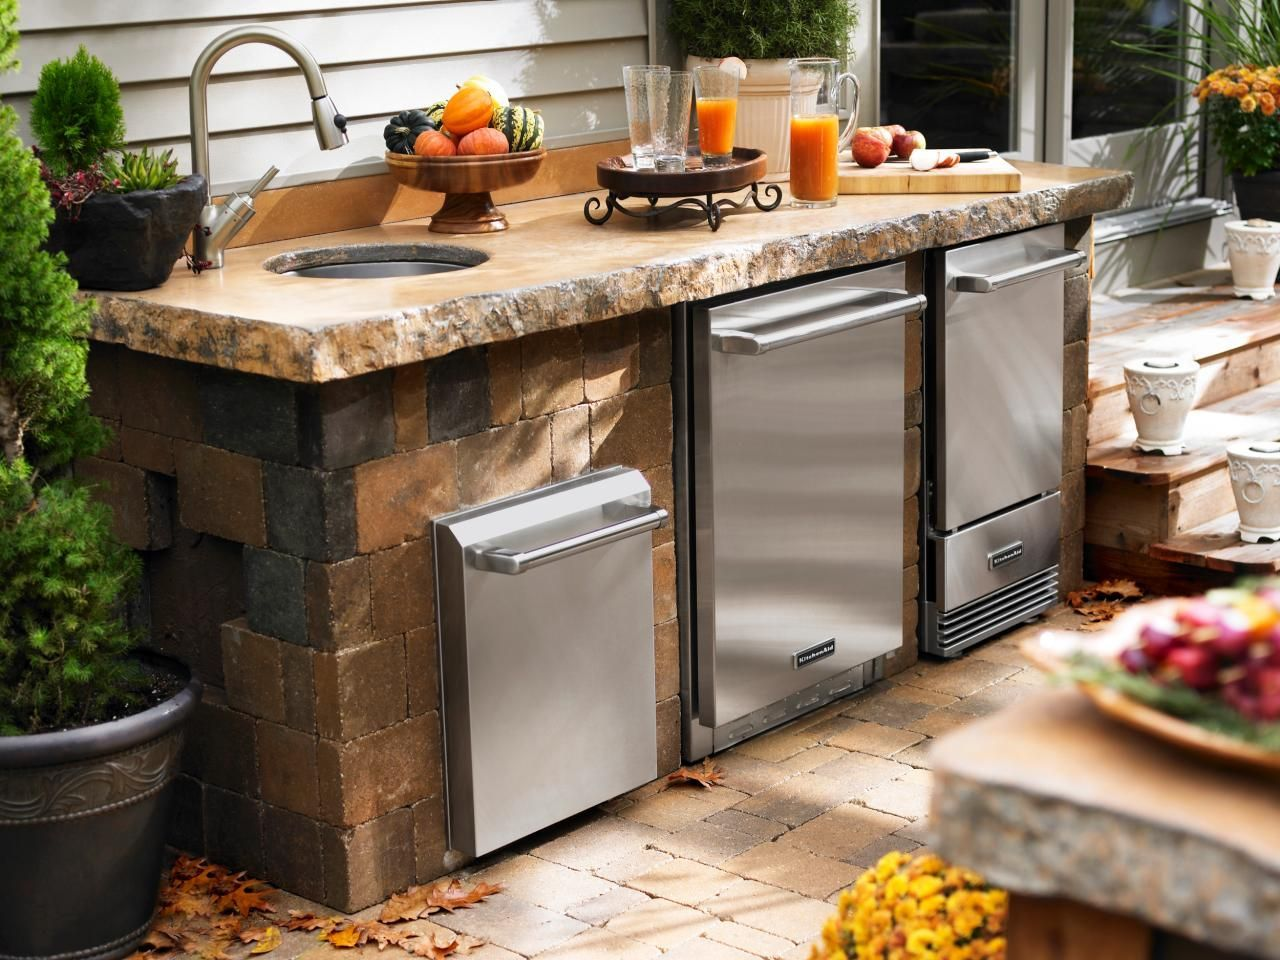 Outdoor Kitchen Ideas On A Budget Pictures Tips Ideas Outdoor Design Landscaping Ideas Porches Decks Outdoor Kitchen Small Outdoor Kitchens